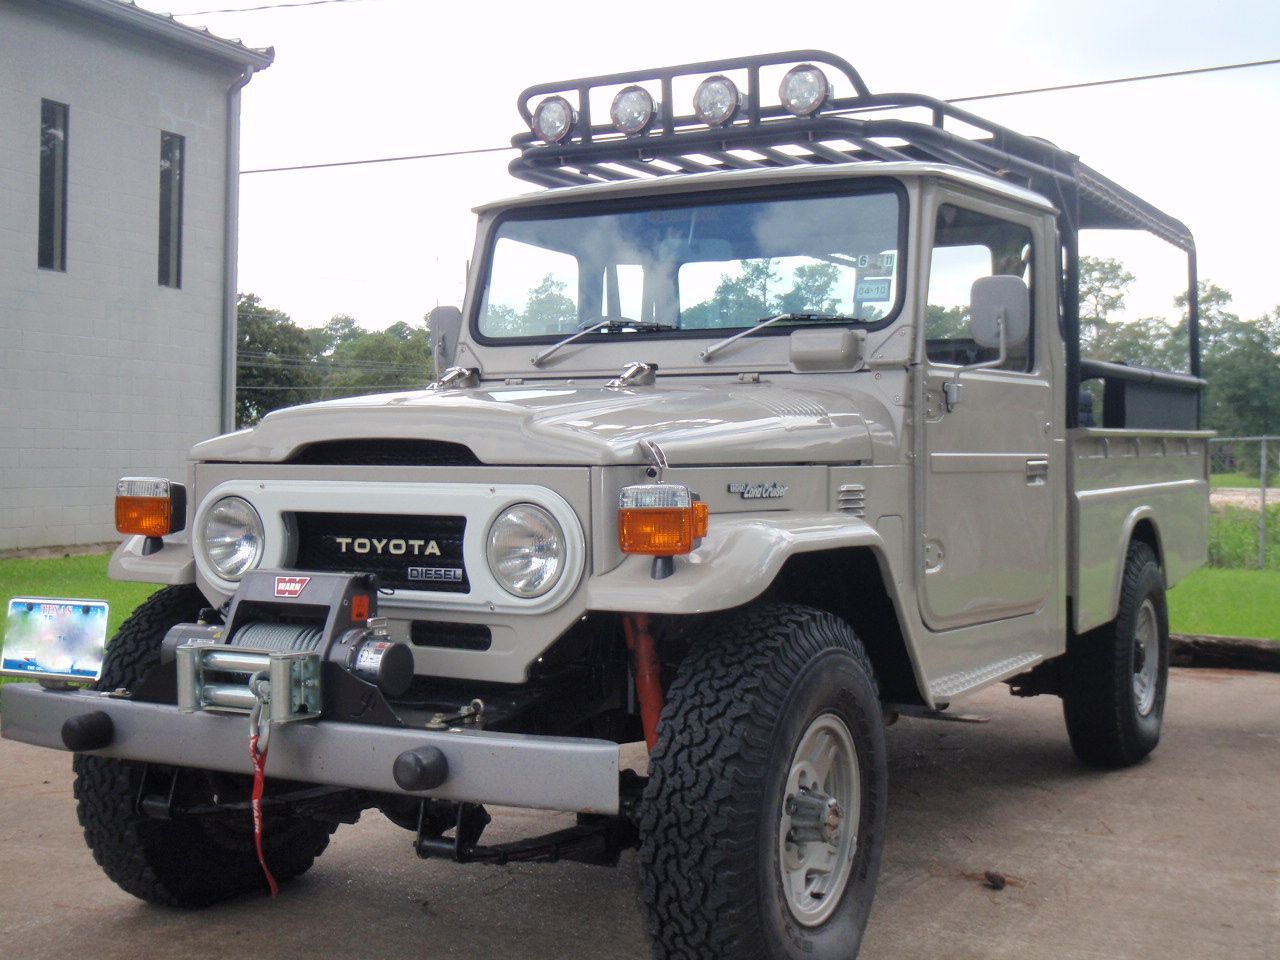 Pin By Undisclosed Location On Toyota Bj45 Land Cruiser Toyota